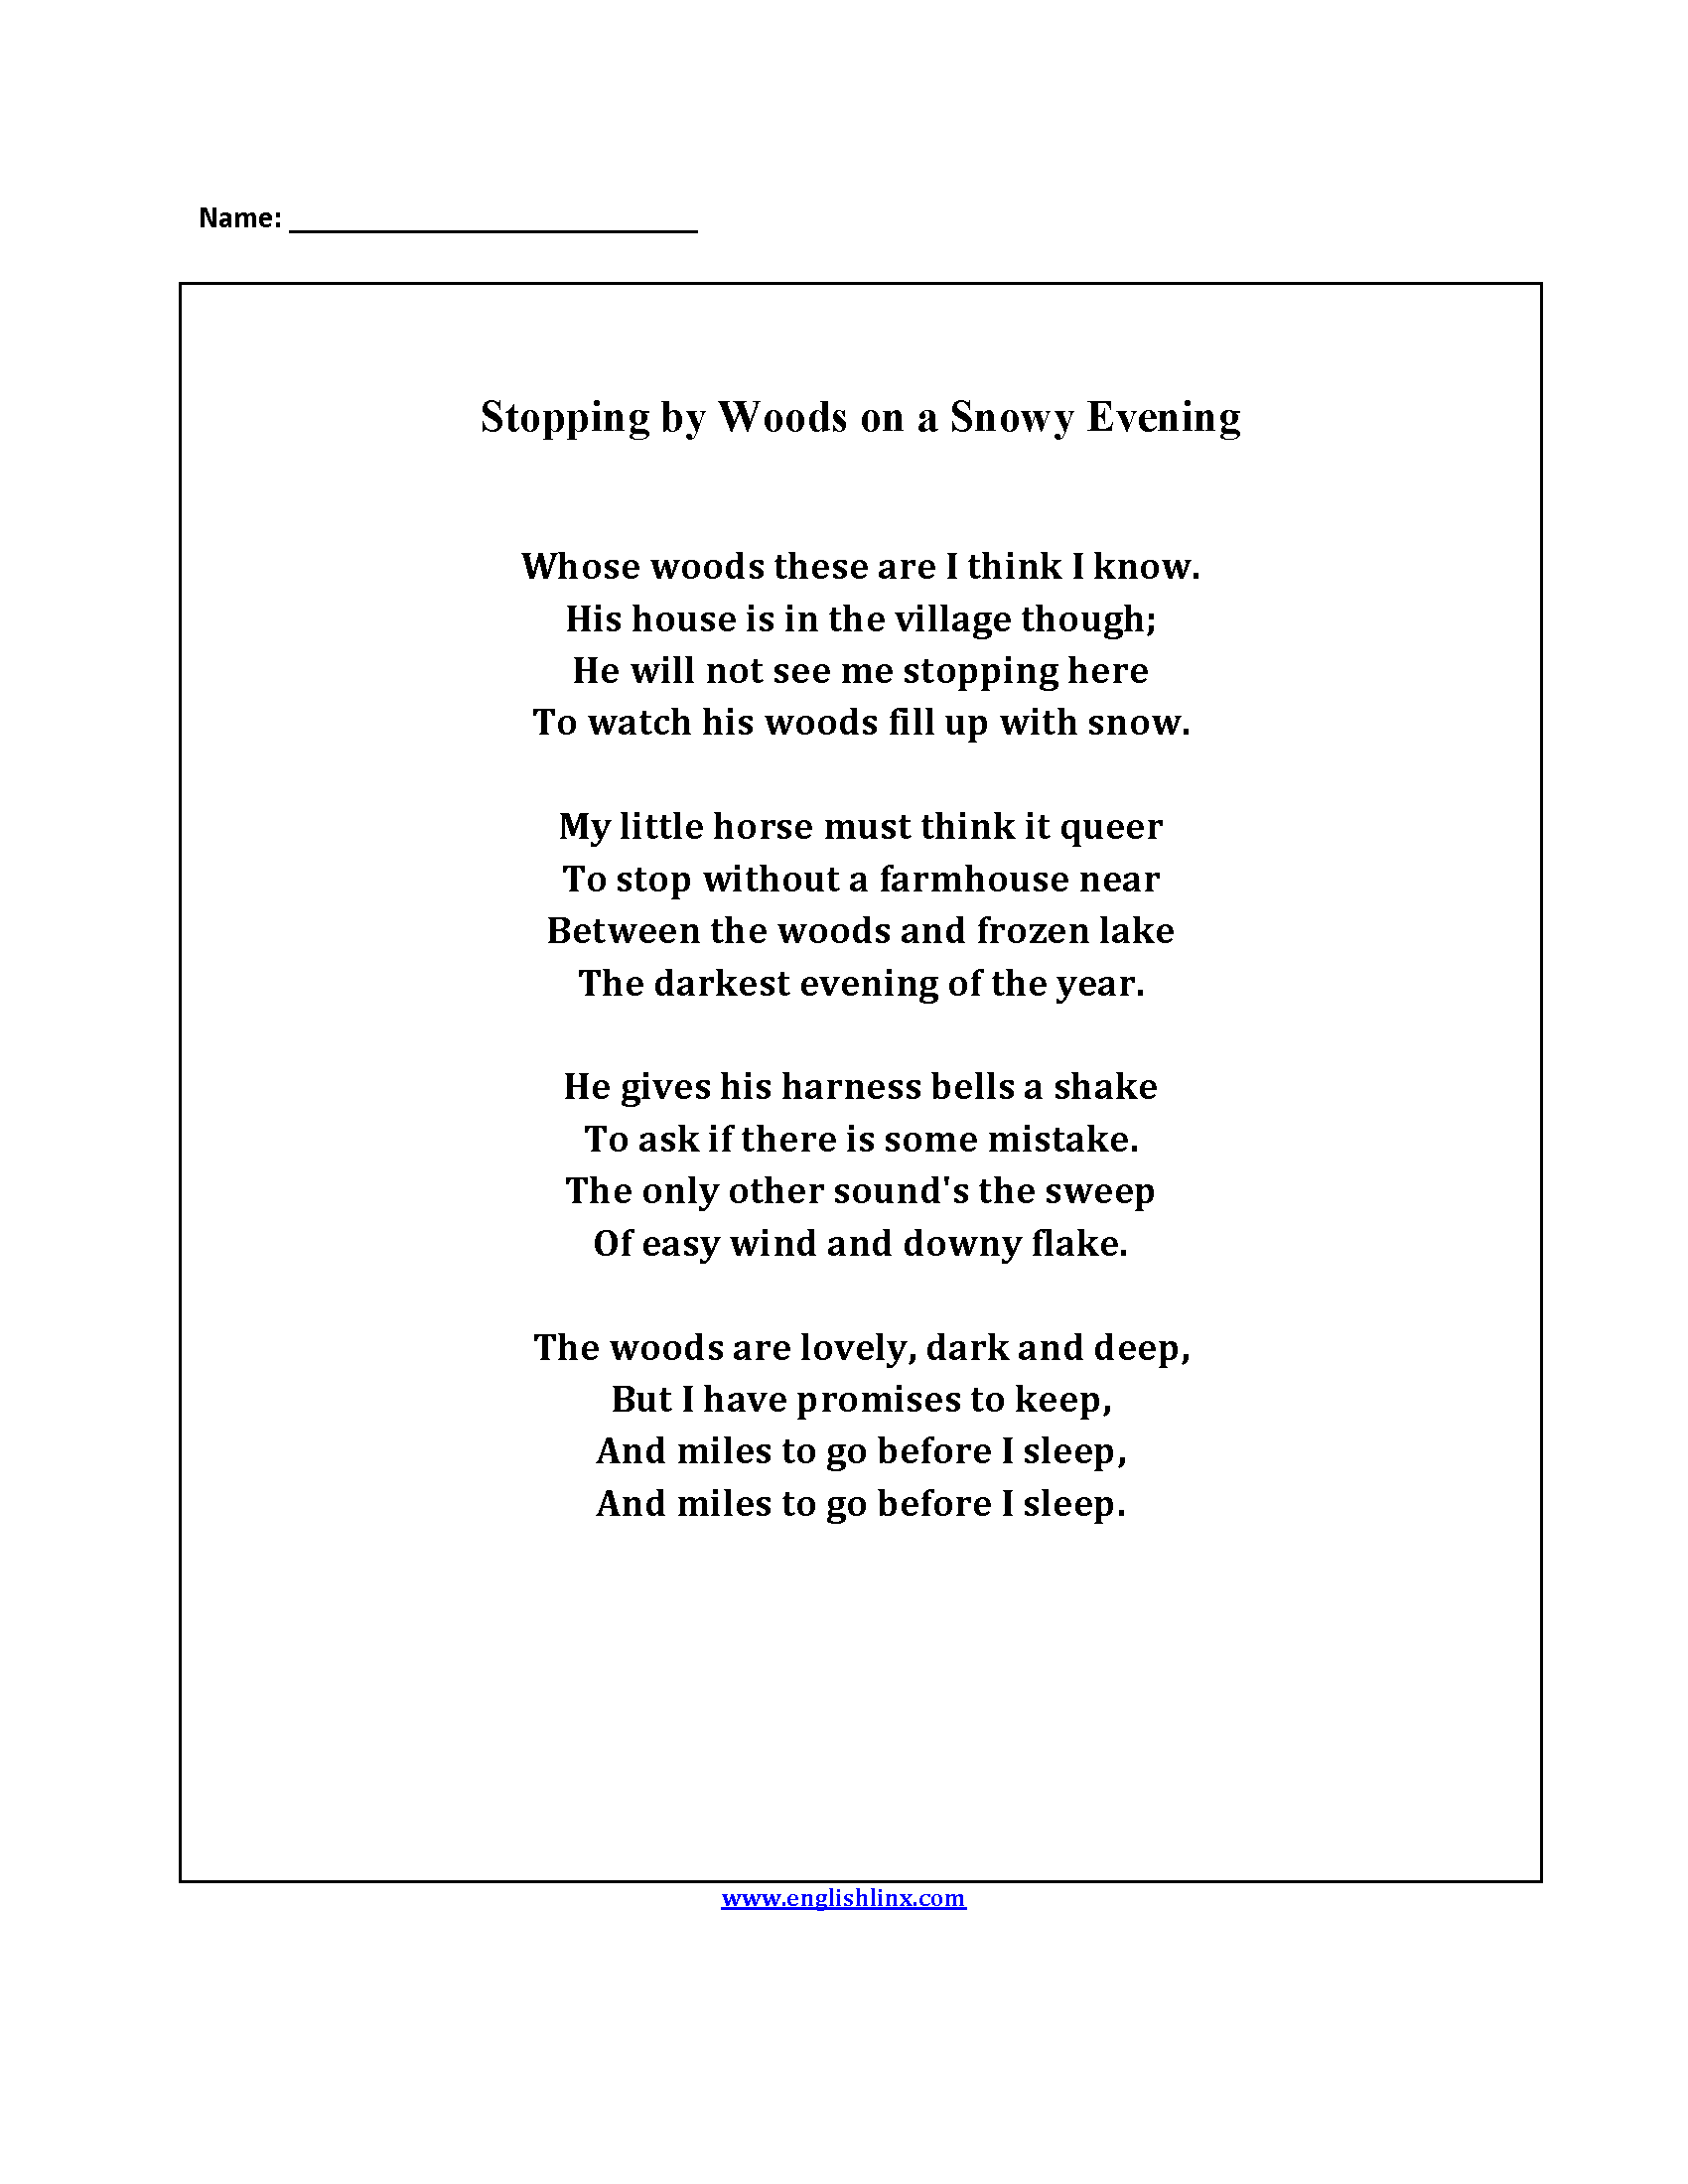 essay on stopping by woods on a snowy evening fahrenheit analysis  poetry worksheets stopping by the woods poetry worksheets stopping by the woods poetry worksheets stopping by woods on a snowy evening essay